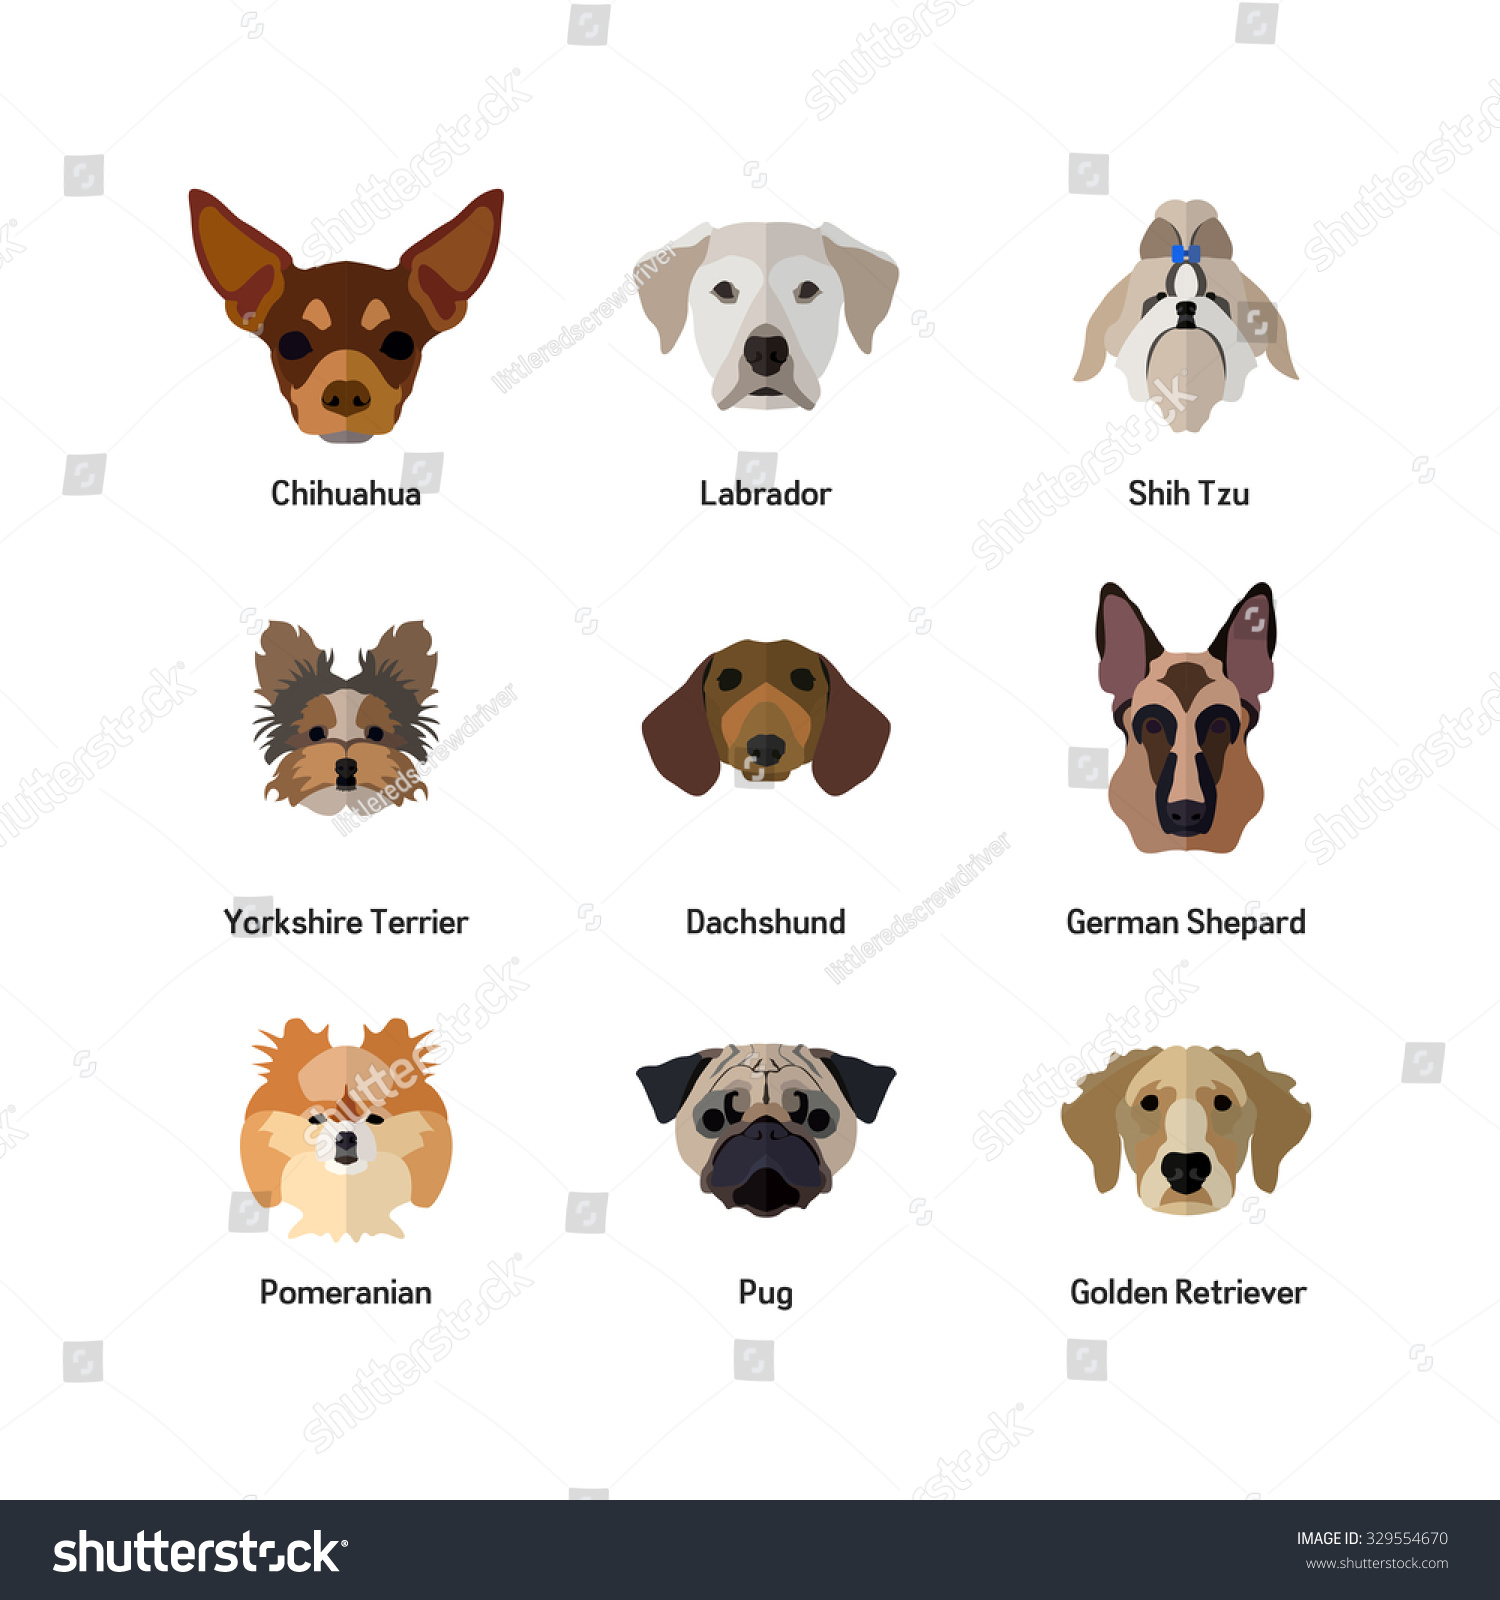 Dog Icon Flat Style Golden Retriever Stock Vector ... Raccoon Face Clip Art Black And White